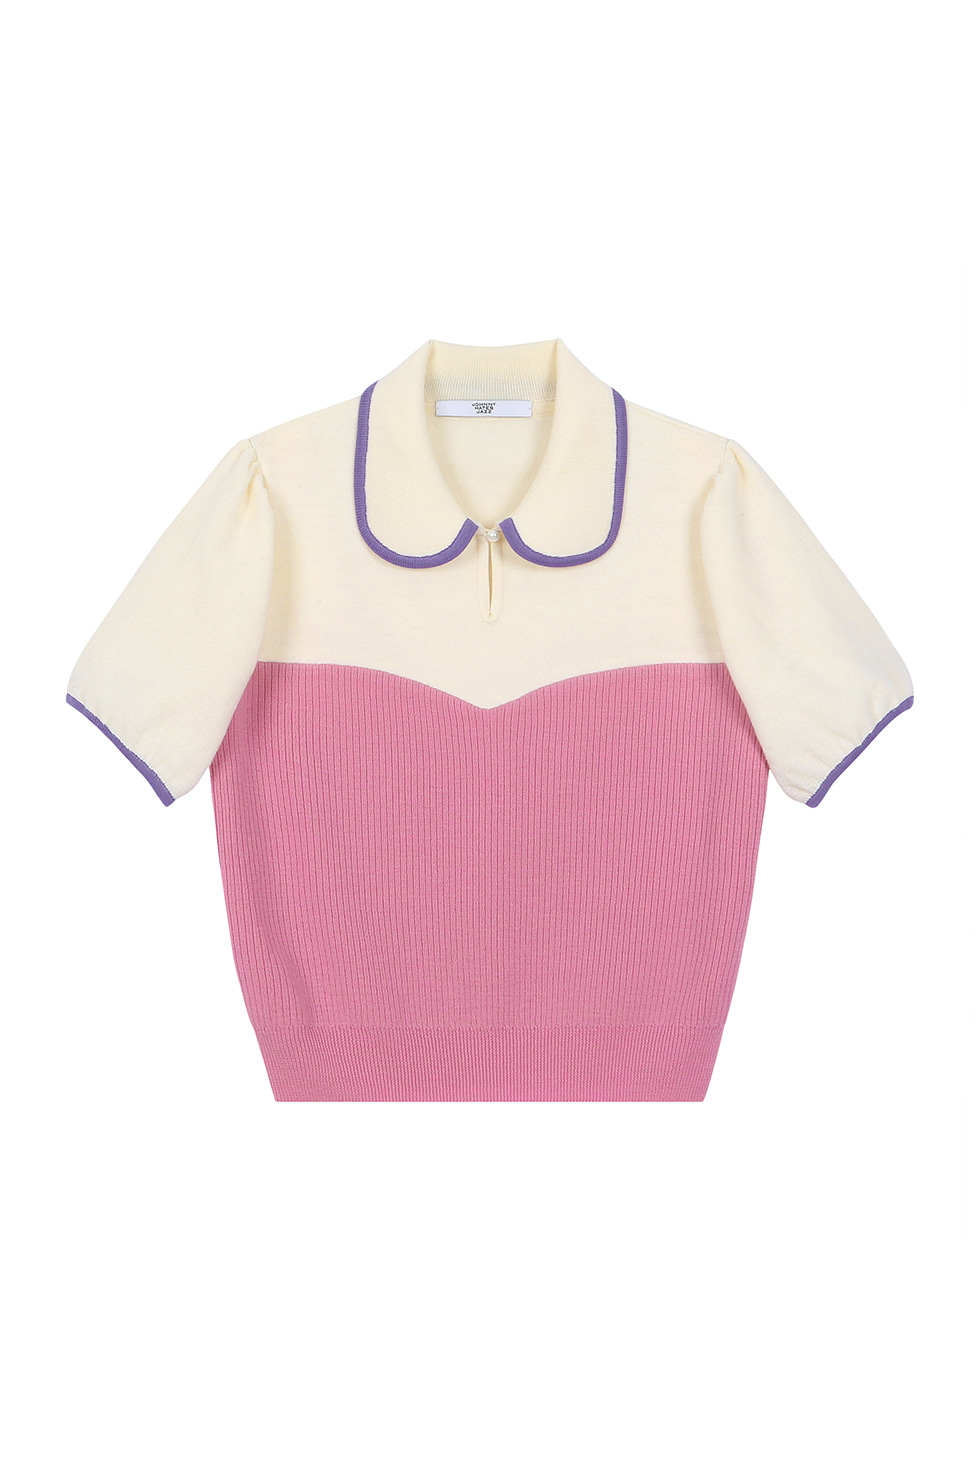 PUFF SLEEVES KNIT TOP - PINK